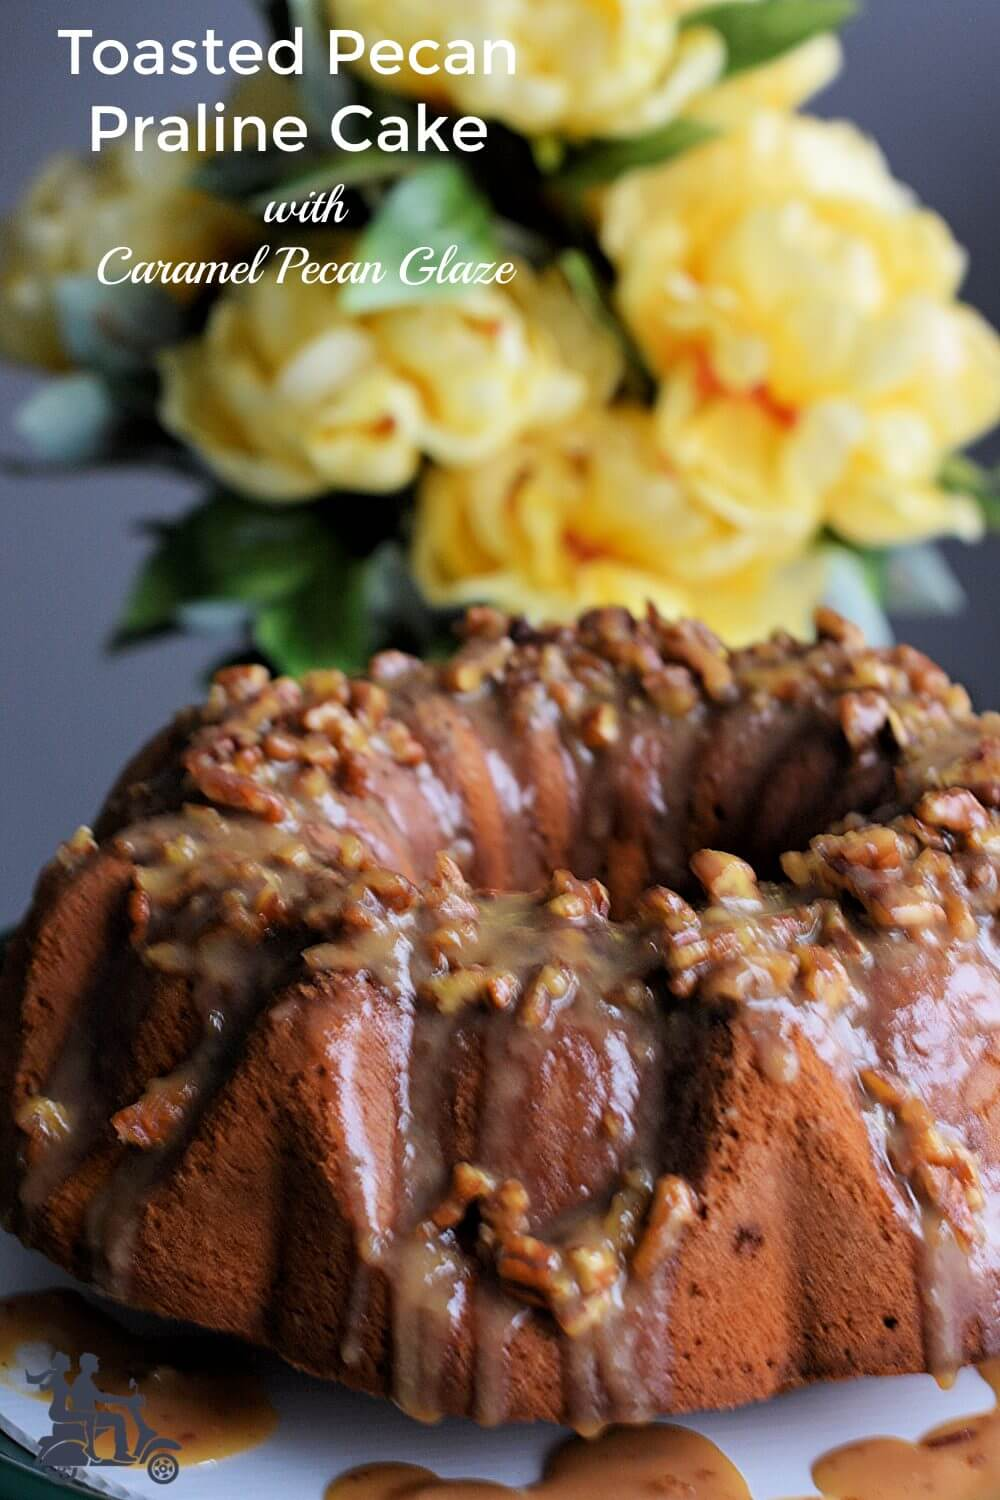 This is a butter rich pound cake that's soft and moist and studded with toasted pecans and heath bits. To finish it off we pour a caramel pecan glaze over it adding to the fantastic flavor. A cake that's an easy dessert to make but beautiful and flavorful so that it makes an occasion special.